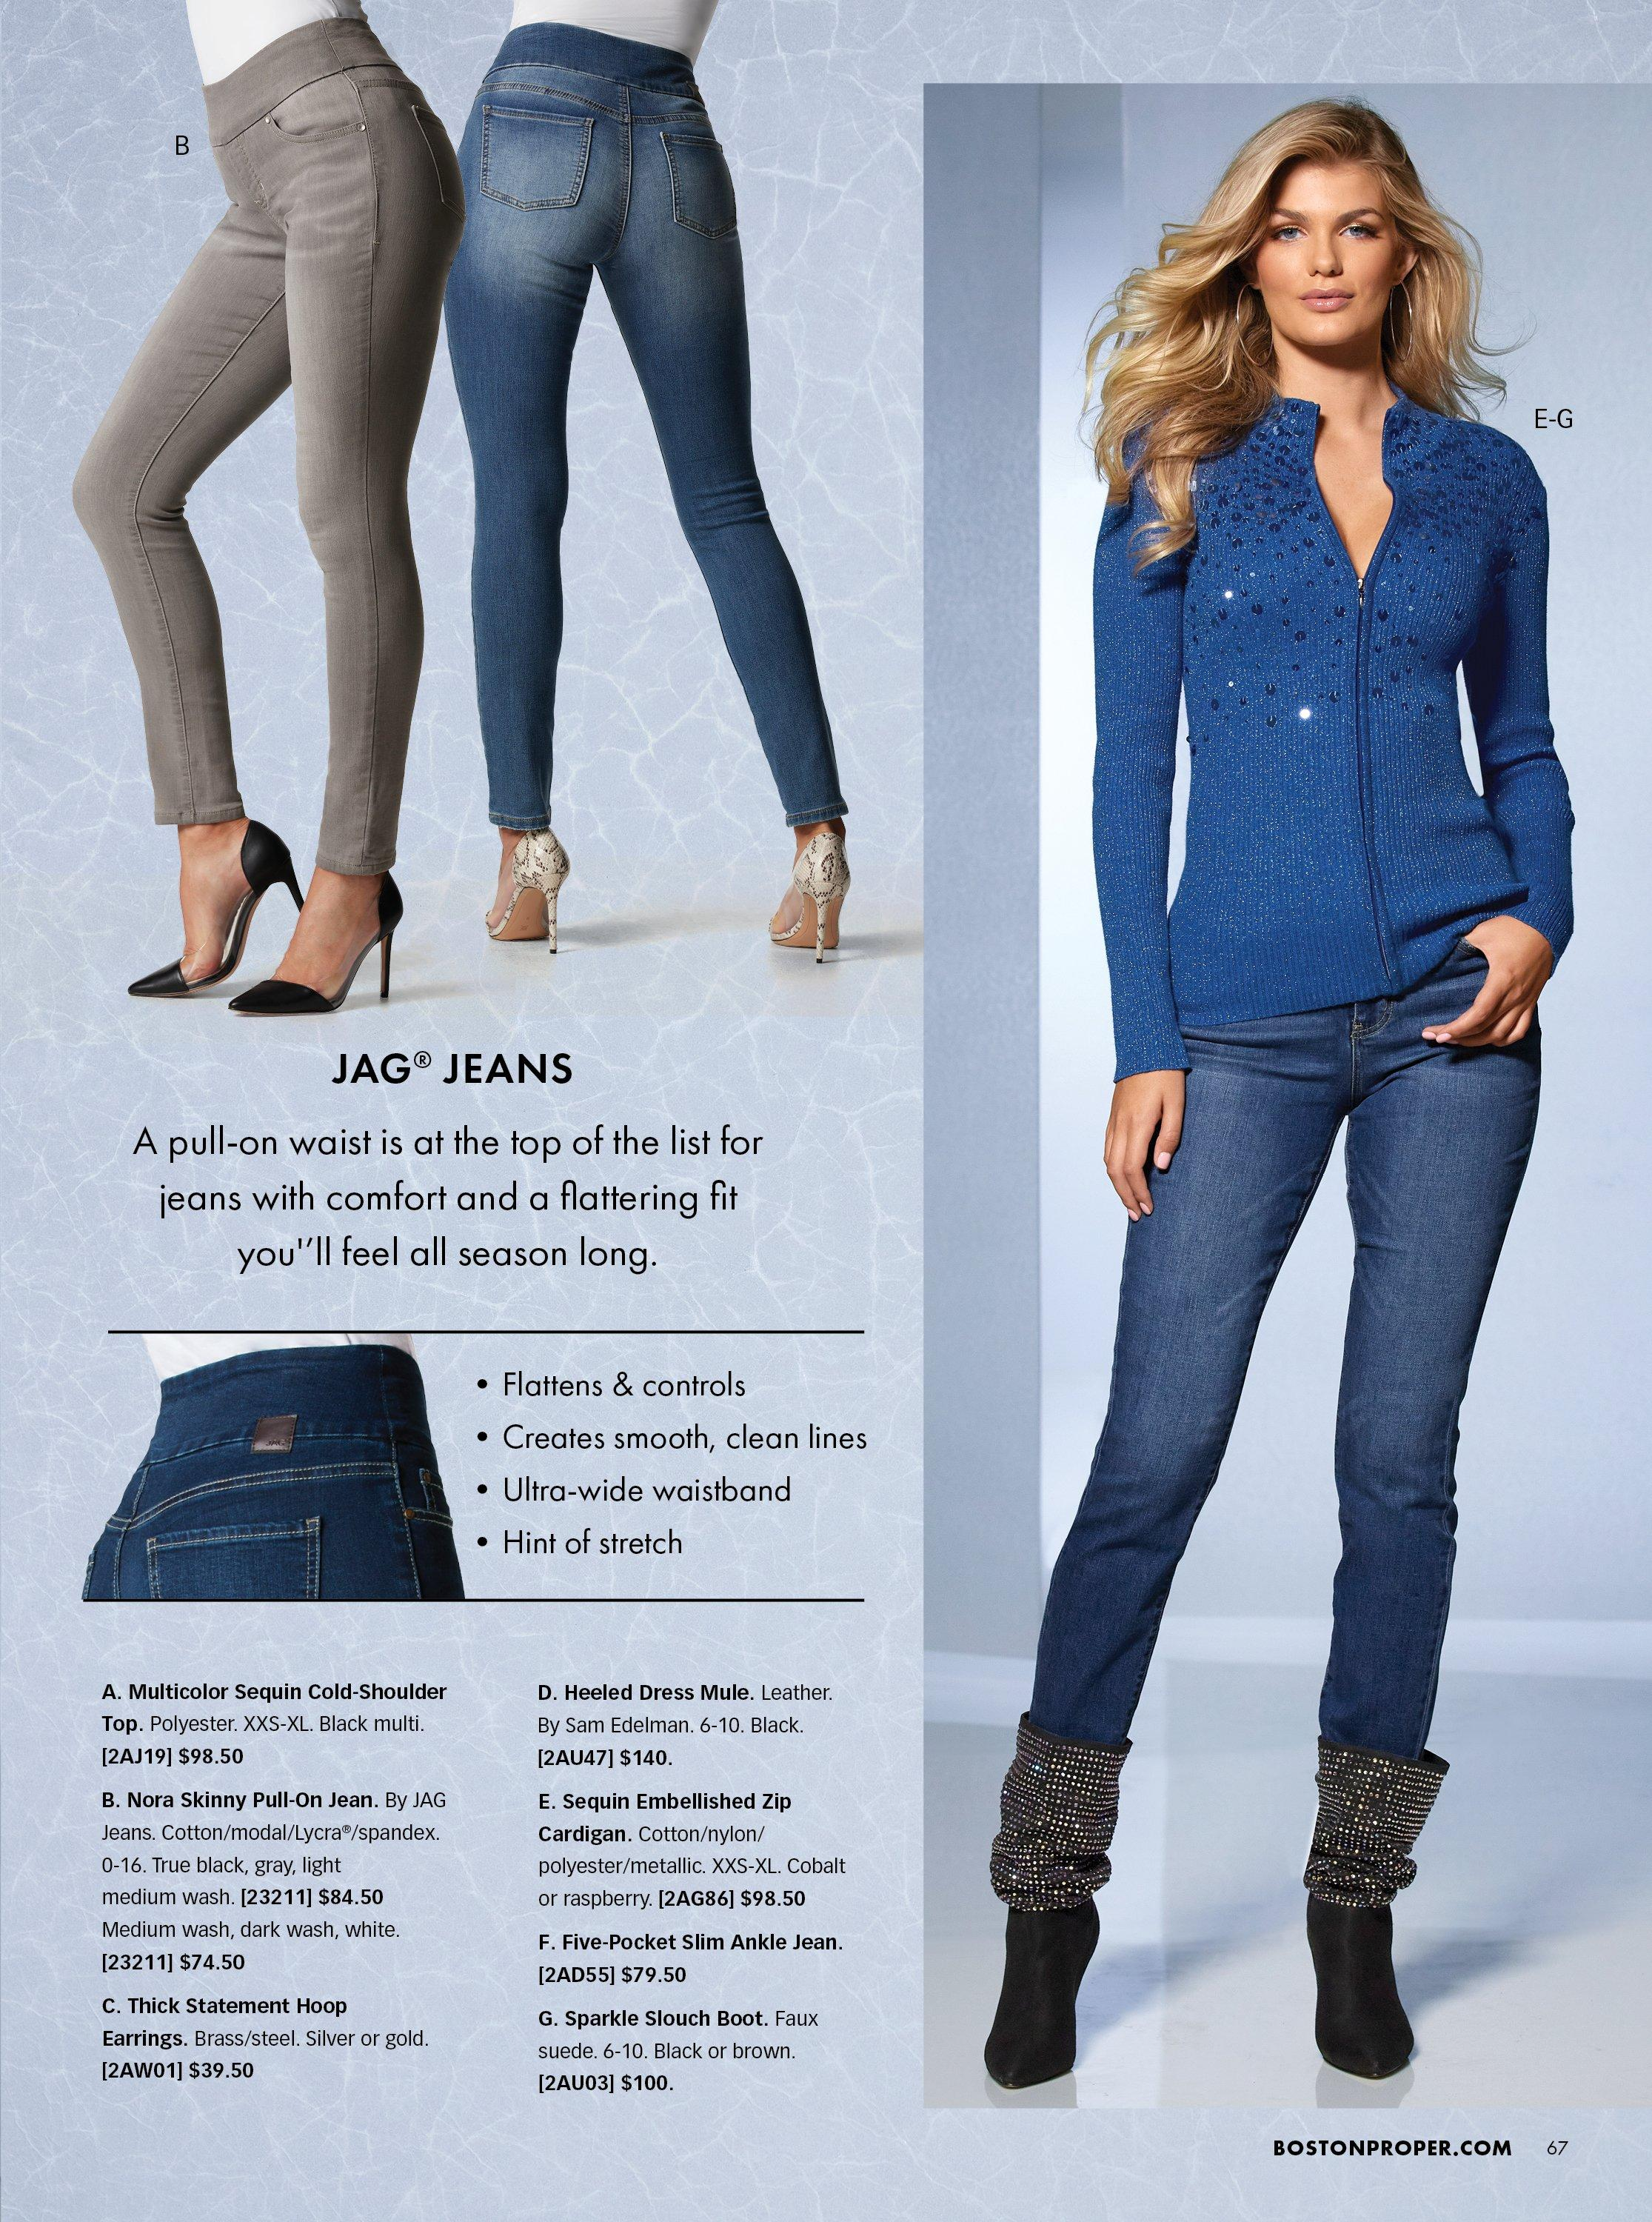 right model wearing a blue sequin embellished zip-up cardigan, jeans, and faux fur cuffed booties. left panel shows pull-on jeans in gray and denim.